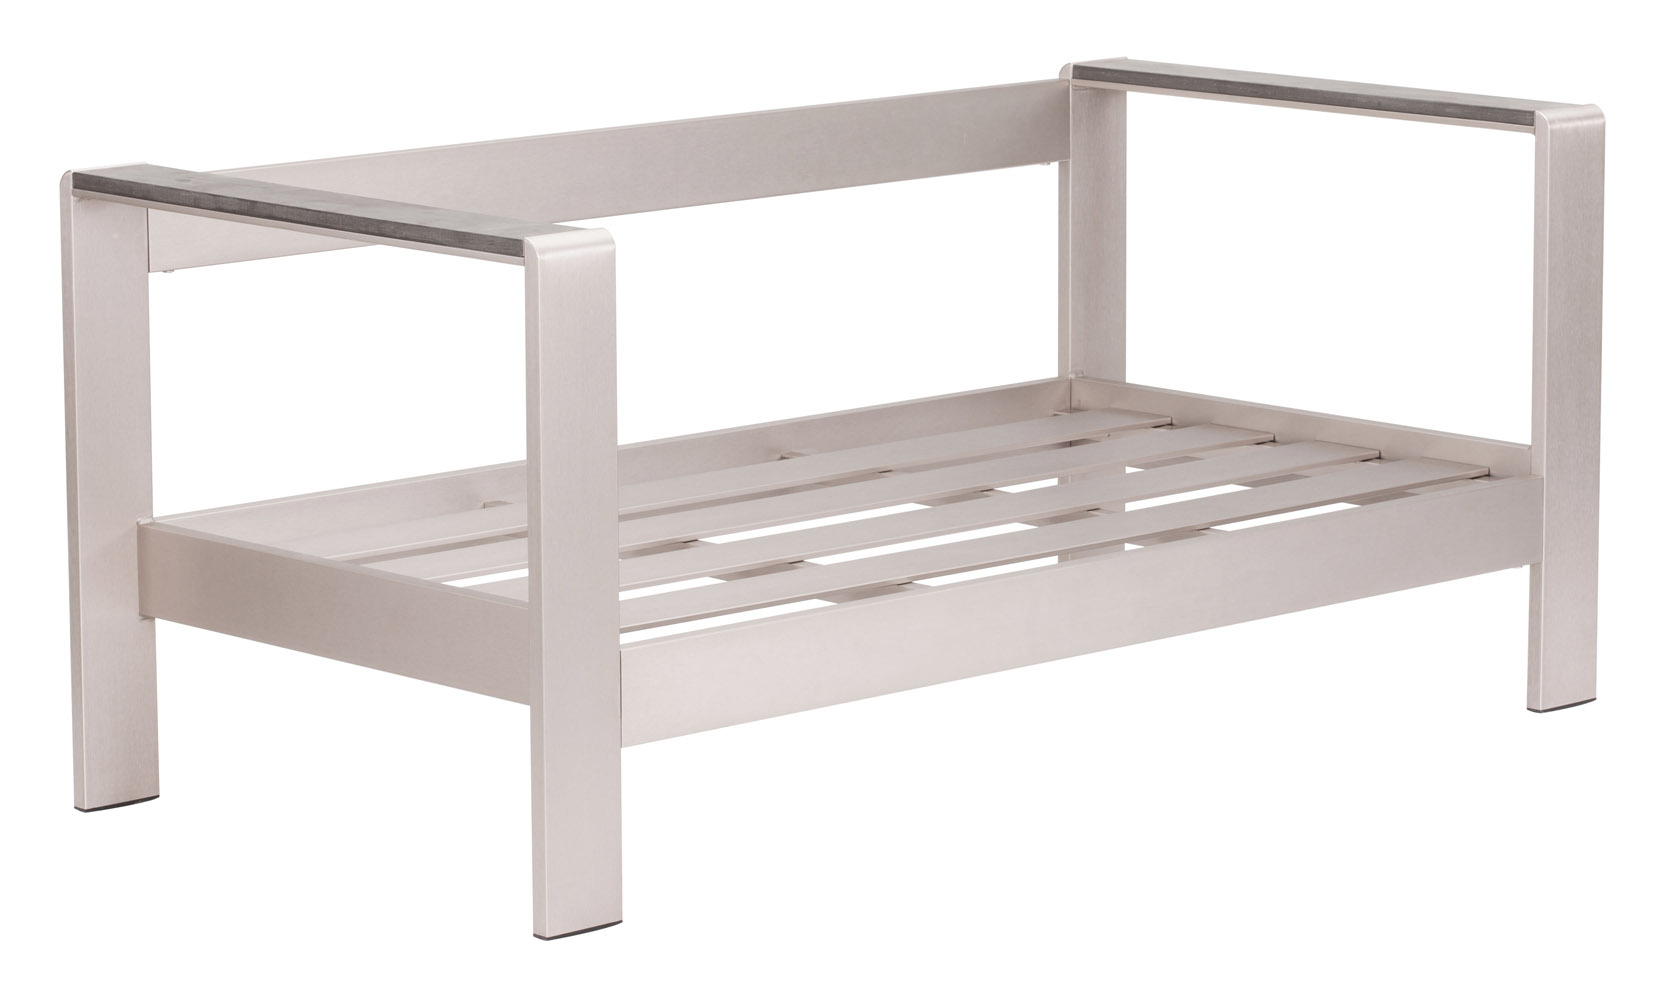 sofa frame zanotta bruce rivera modern brushed aluminum and faux wood outdoor patio